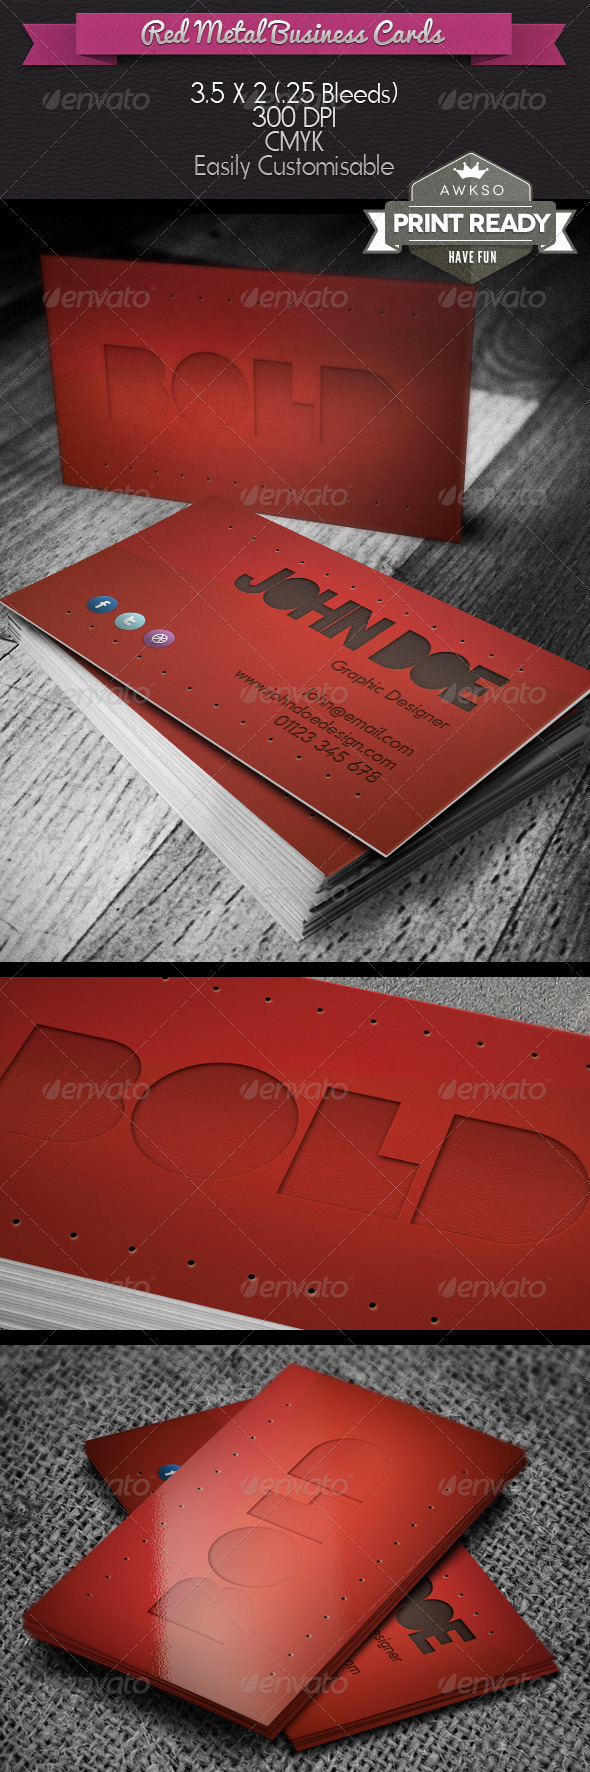 Red Metal Business Card - Creative Business Cards